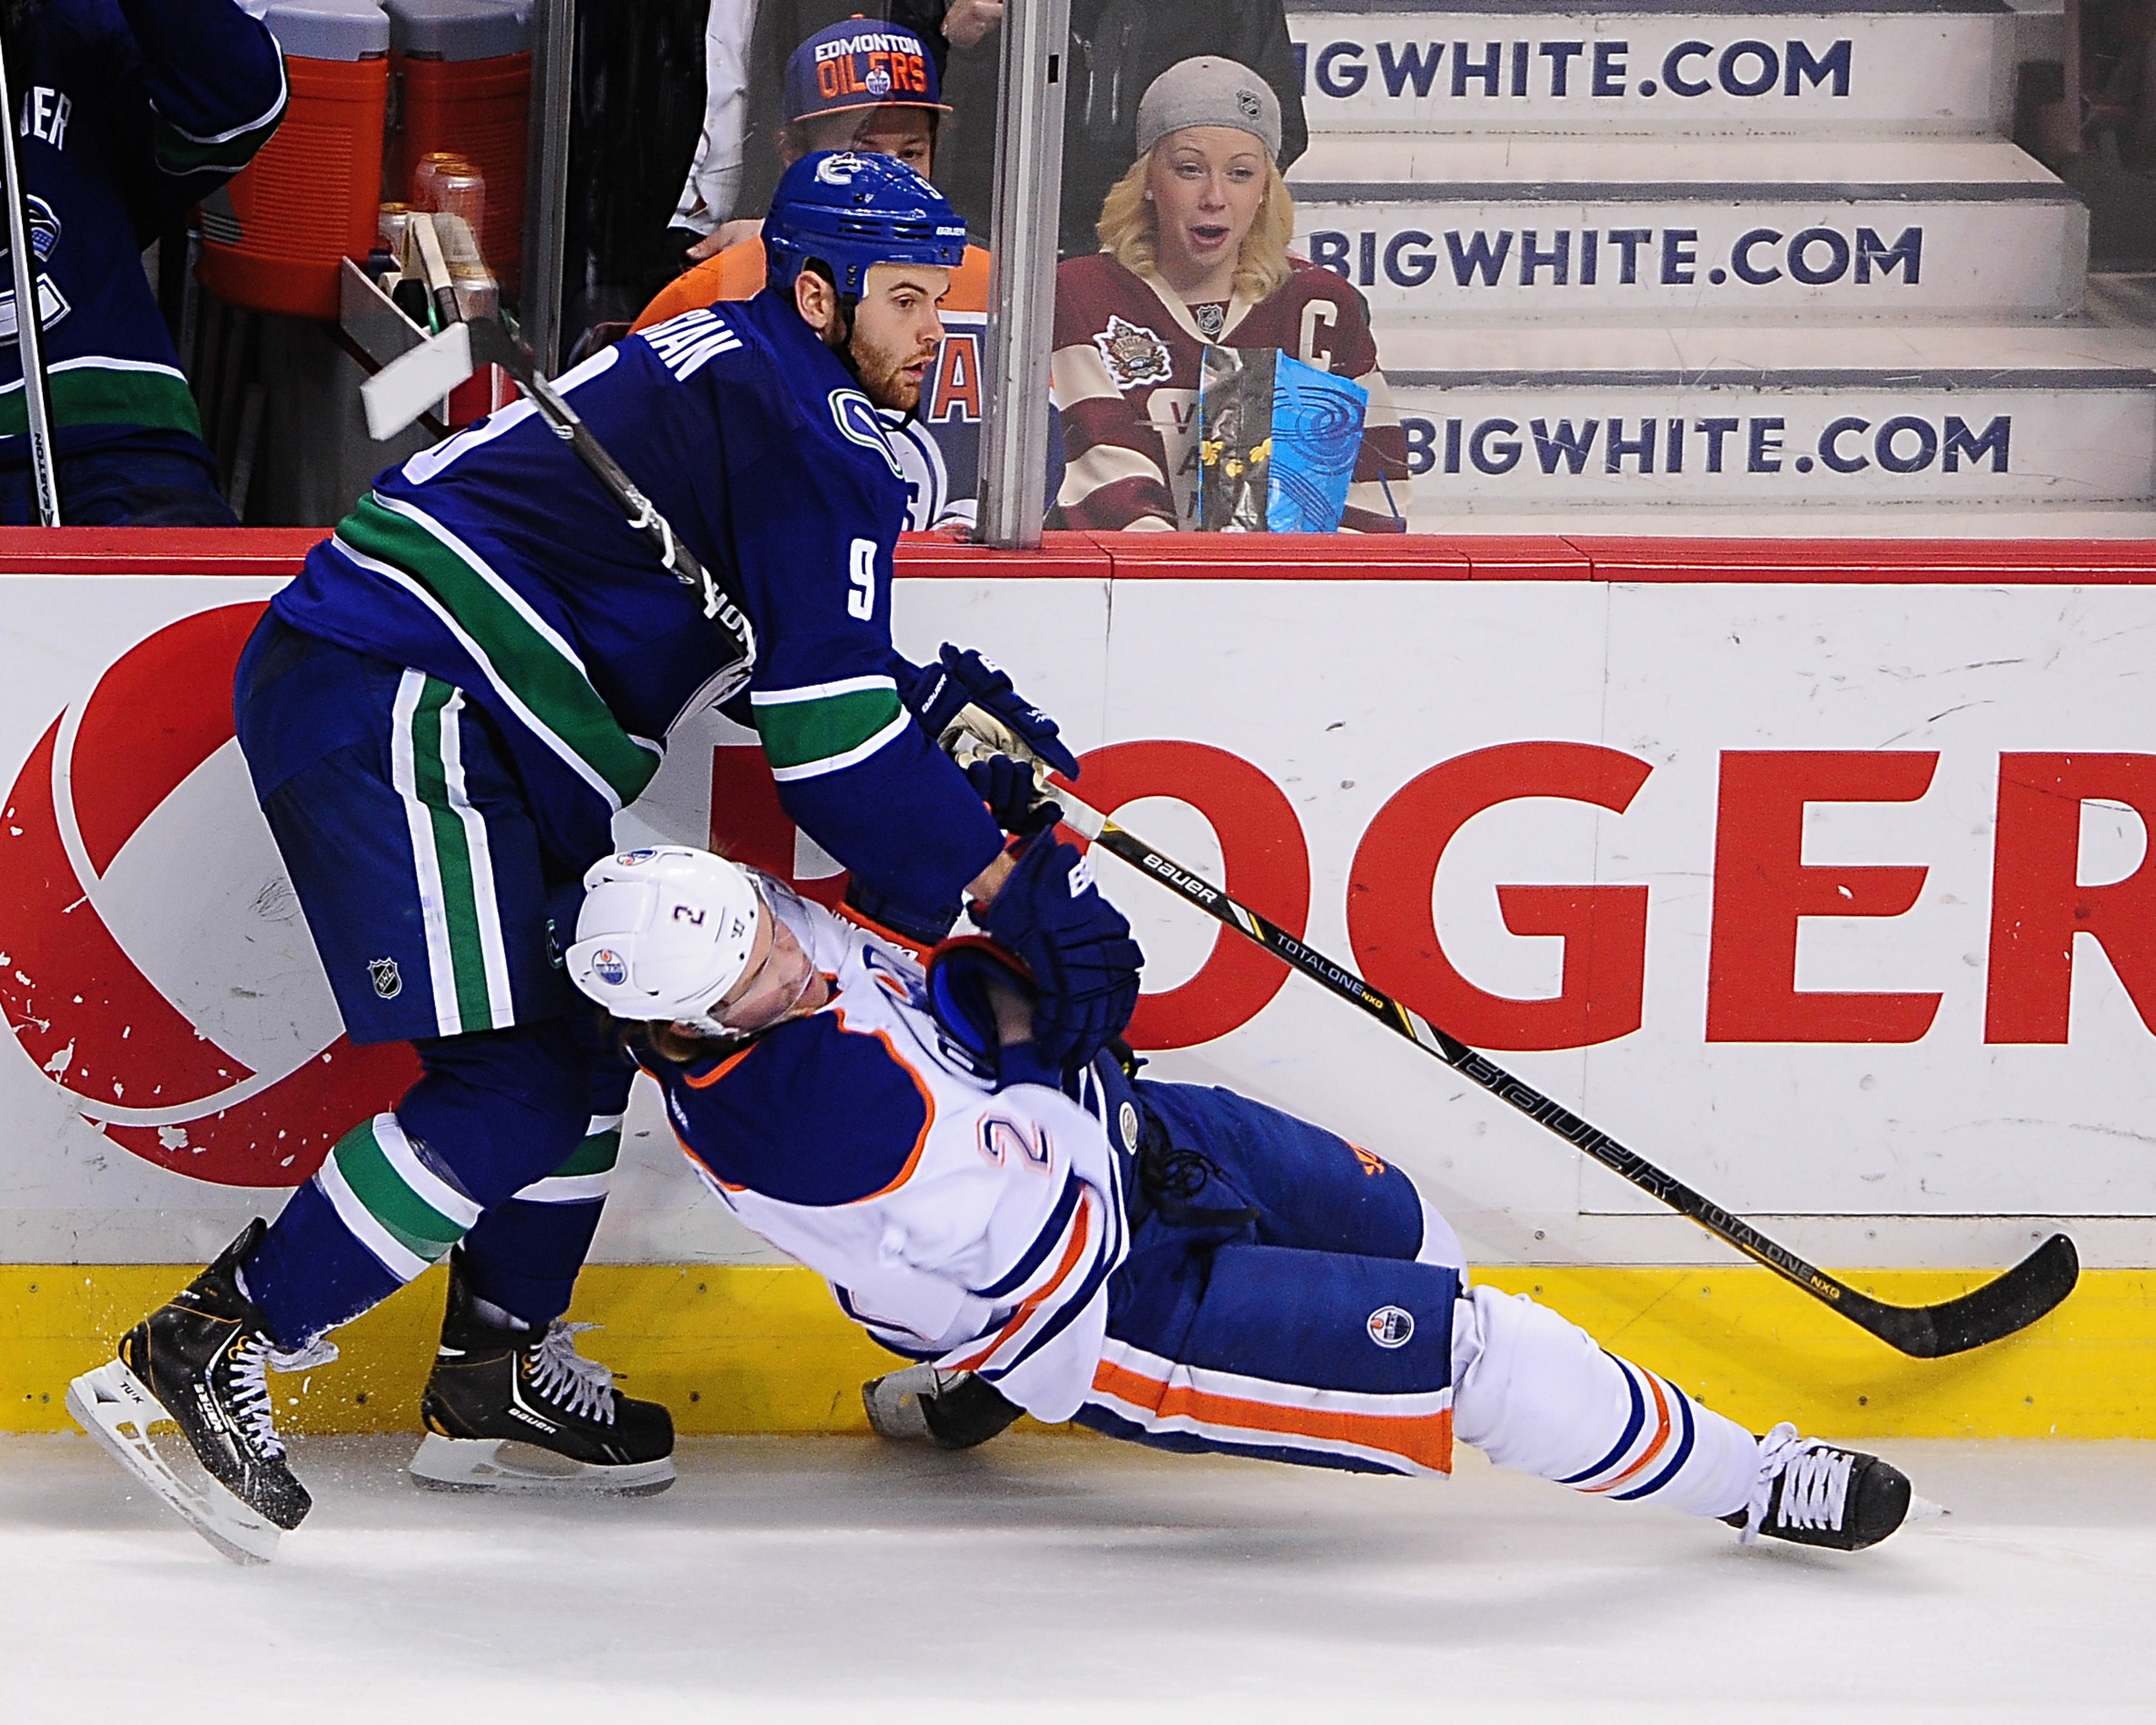 Kassian, trying to kill another Oiler. So dirty...